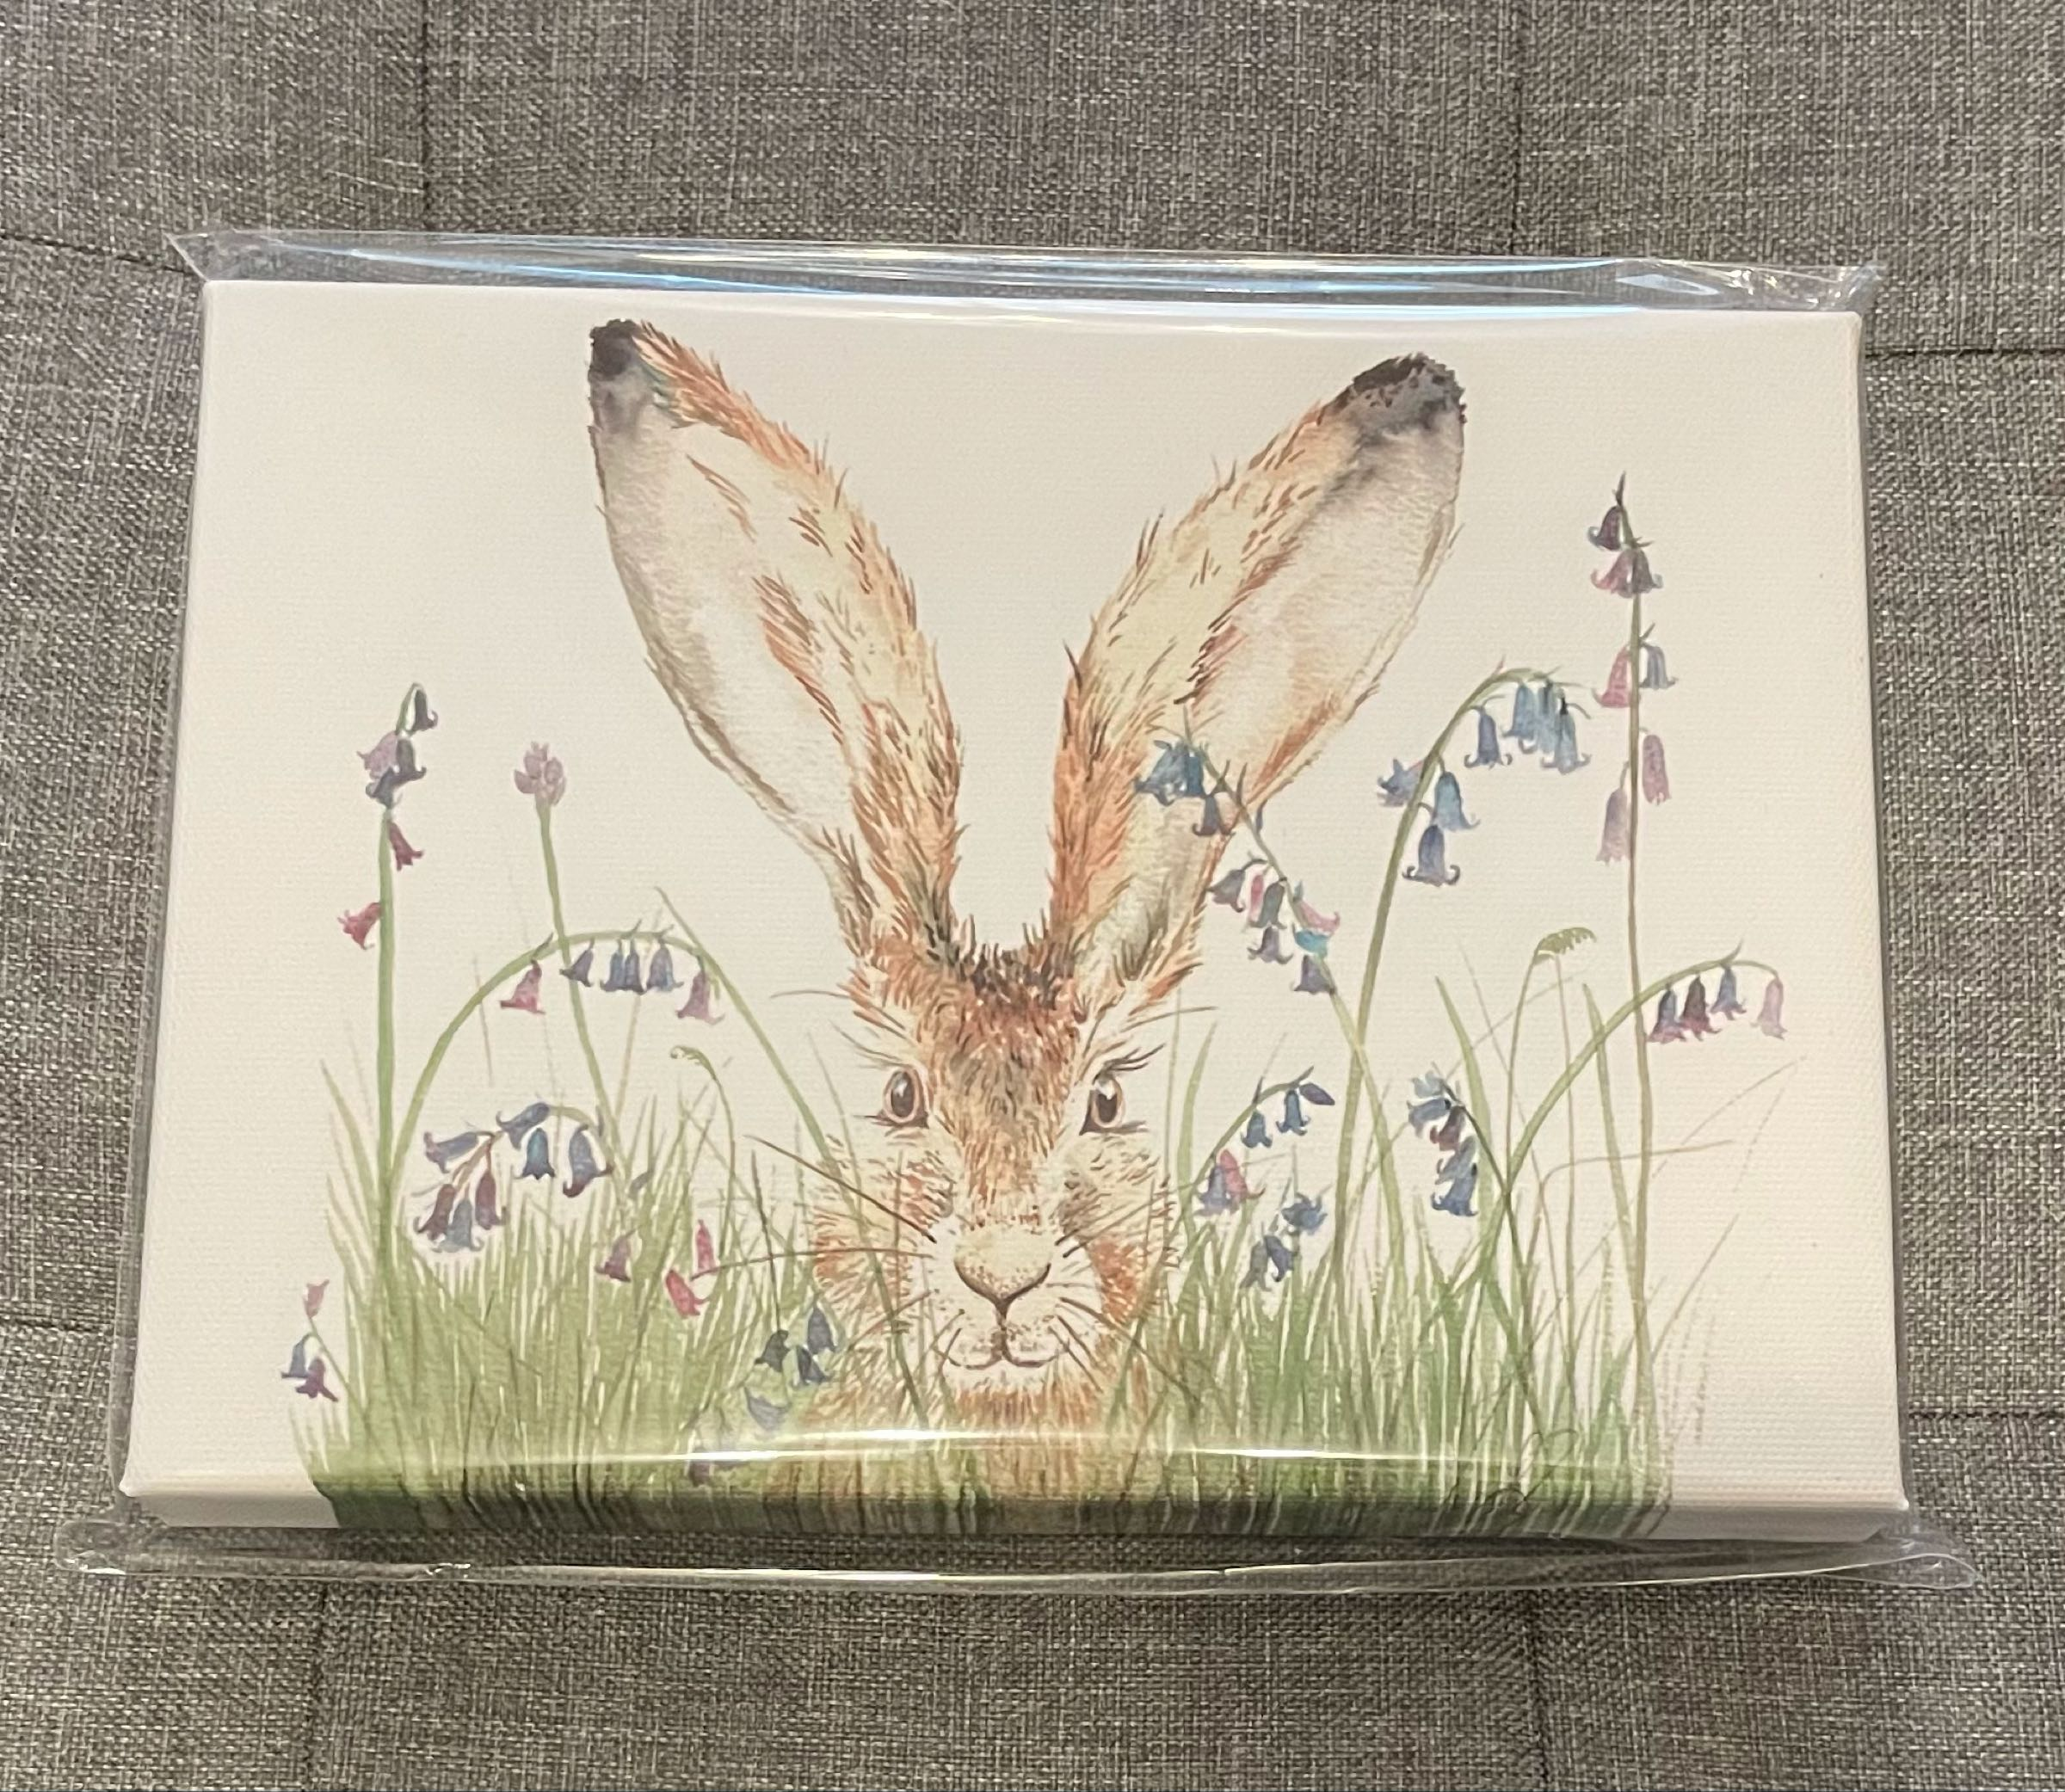 Curious Hare Canvas  by Sarah Reilly 15cmx21cm